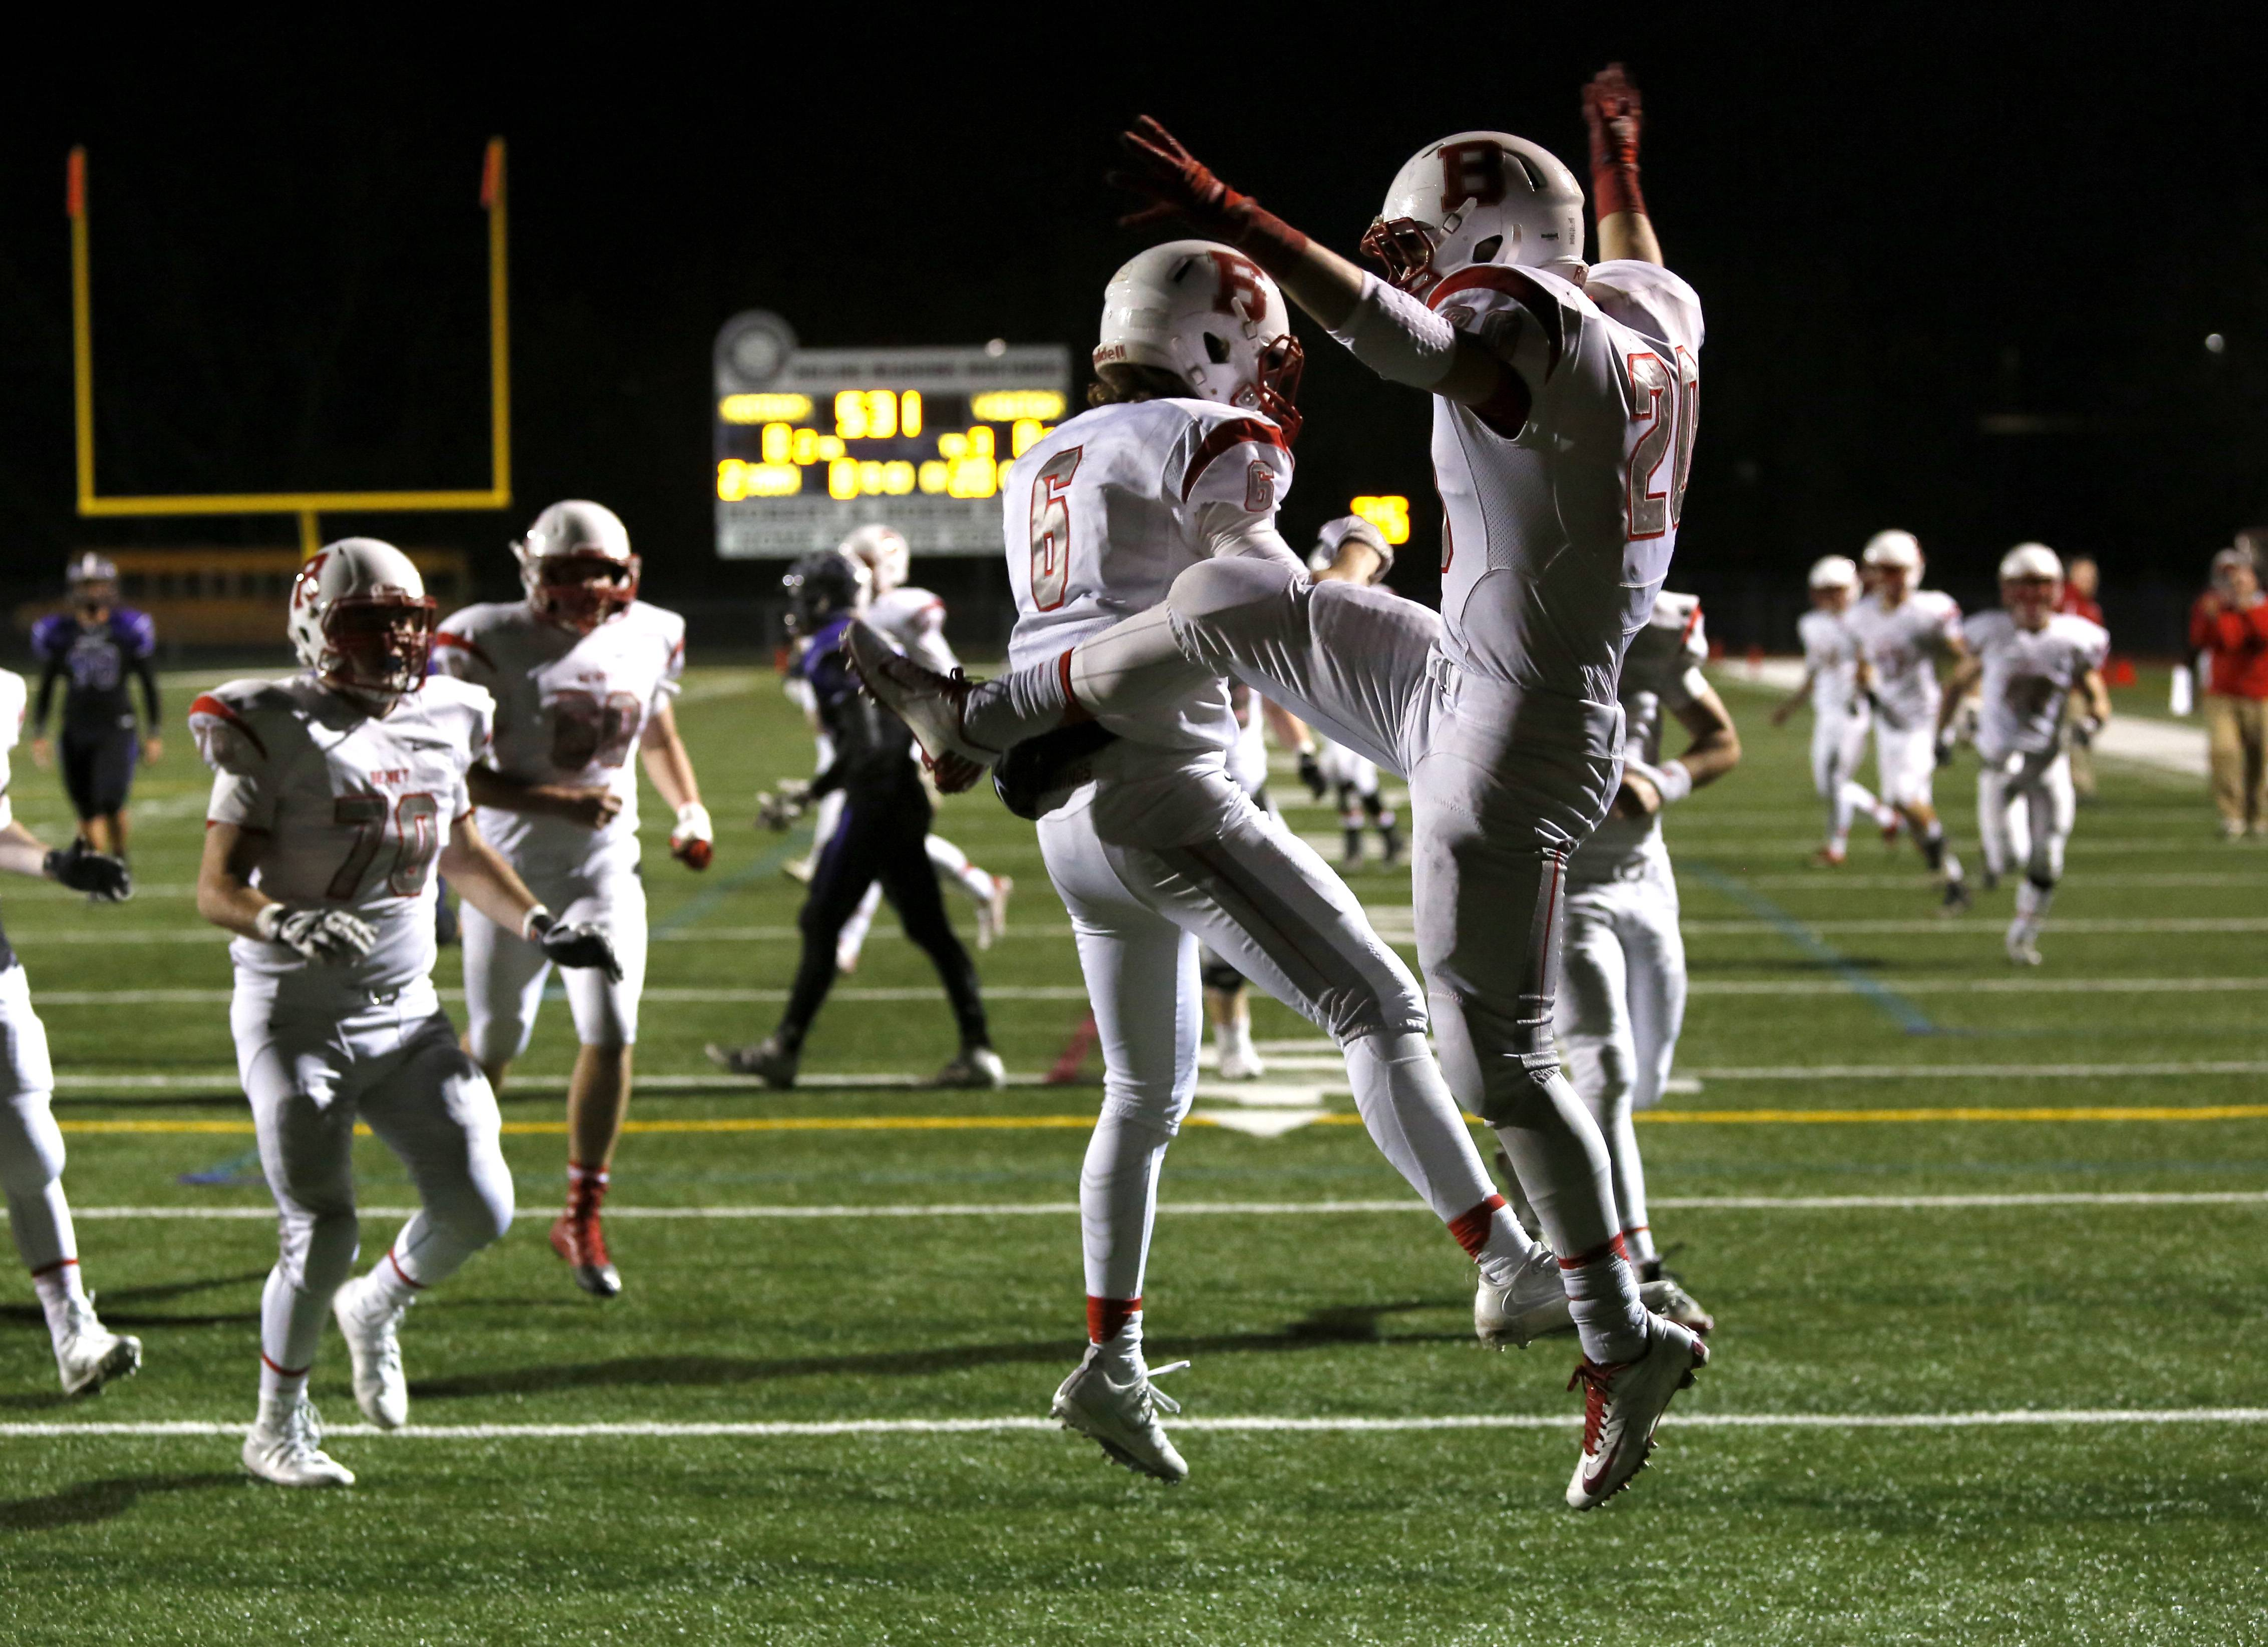 Benet Academy's Marty Dosen, right, celebrates his first-half touchdown catch with Nicholas Keyes, left, against Rolling Meadows during Class 7A football action in Rolling Meadows.